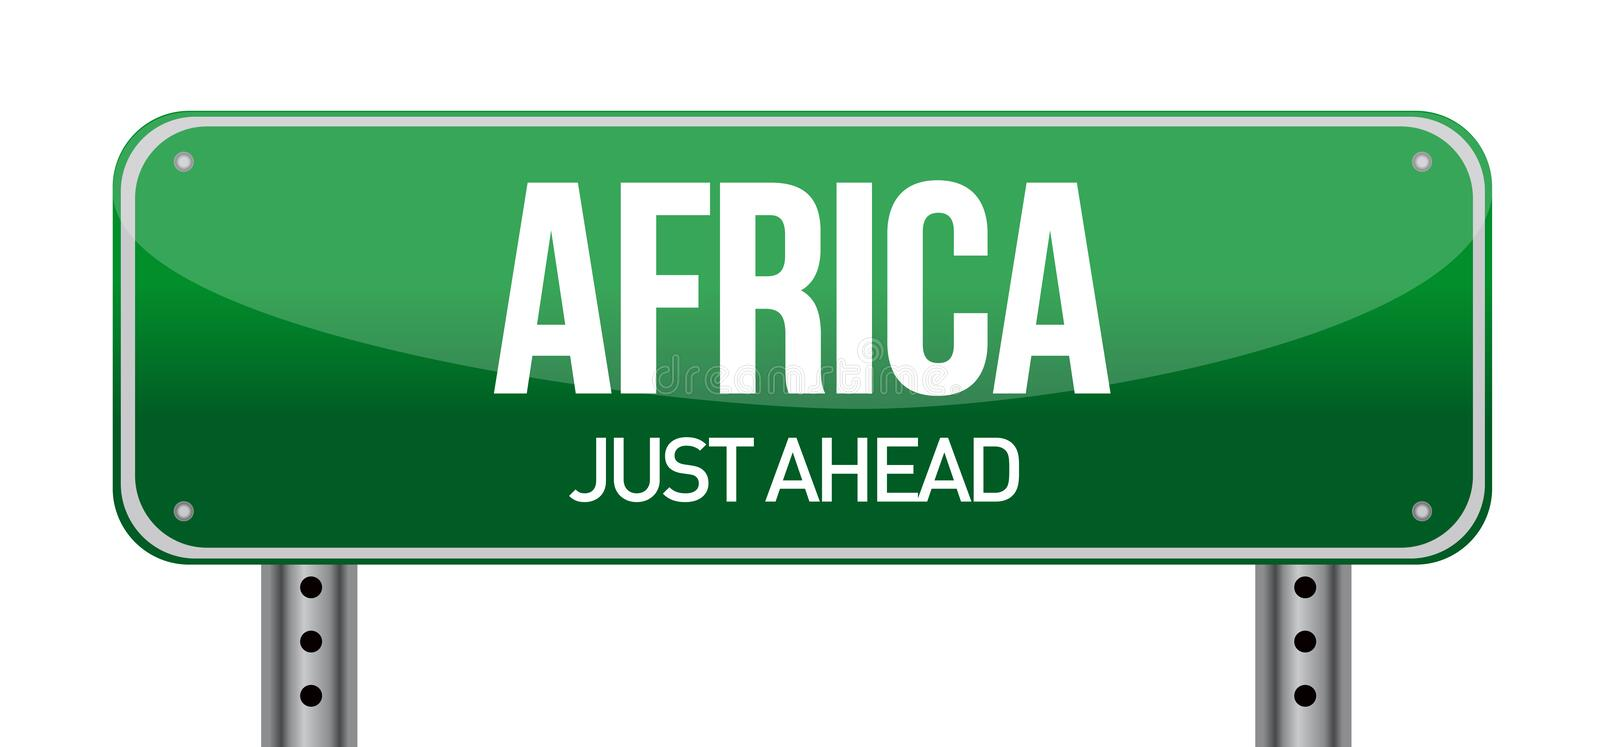 Africa Traffic Road Sign Stock Photos